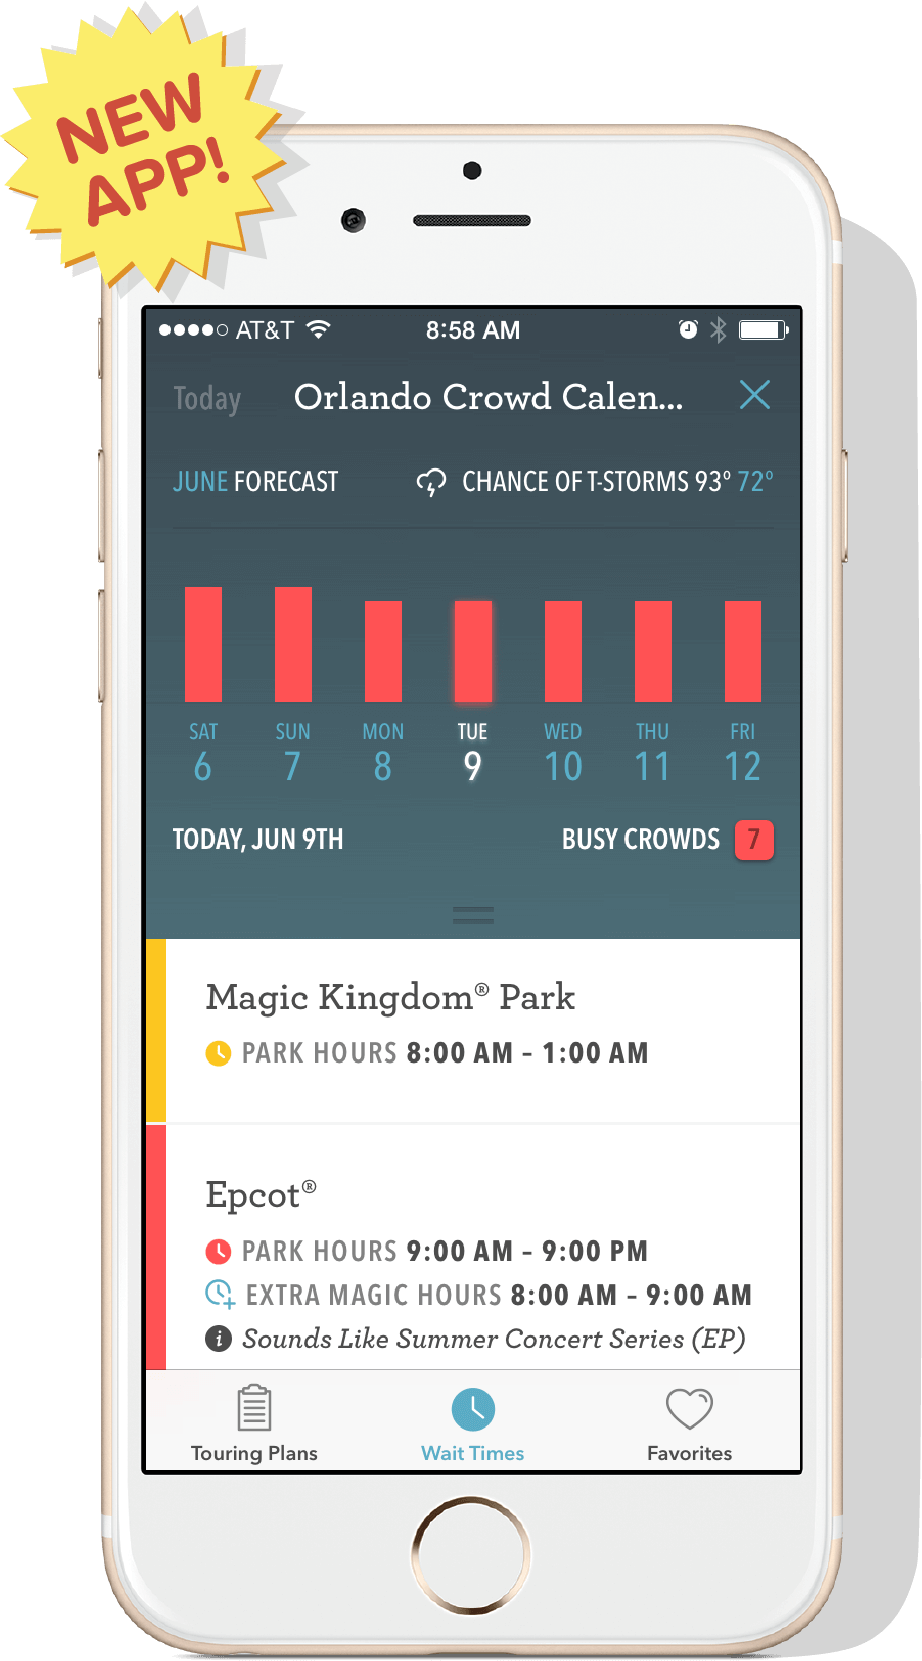 Share Undercover Tourist's Orlando Planning App & Win!